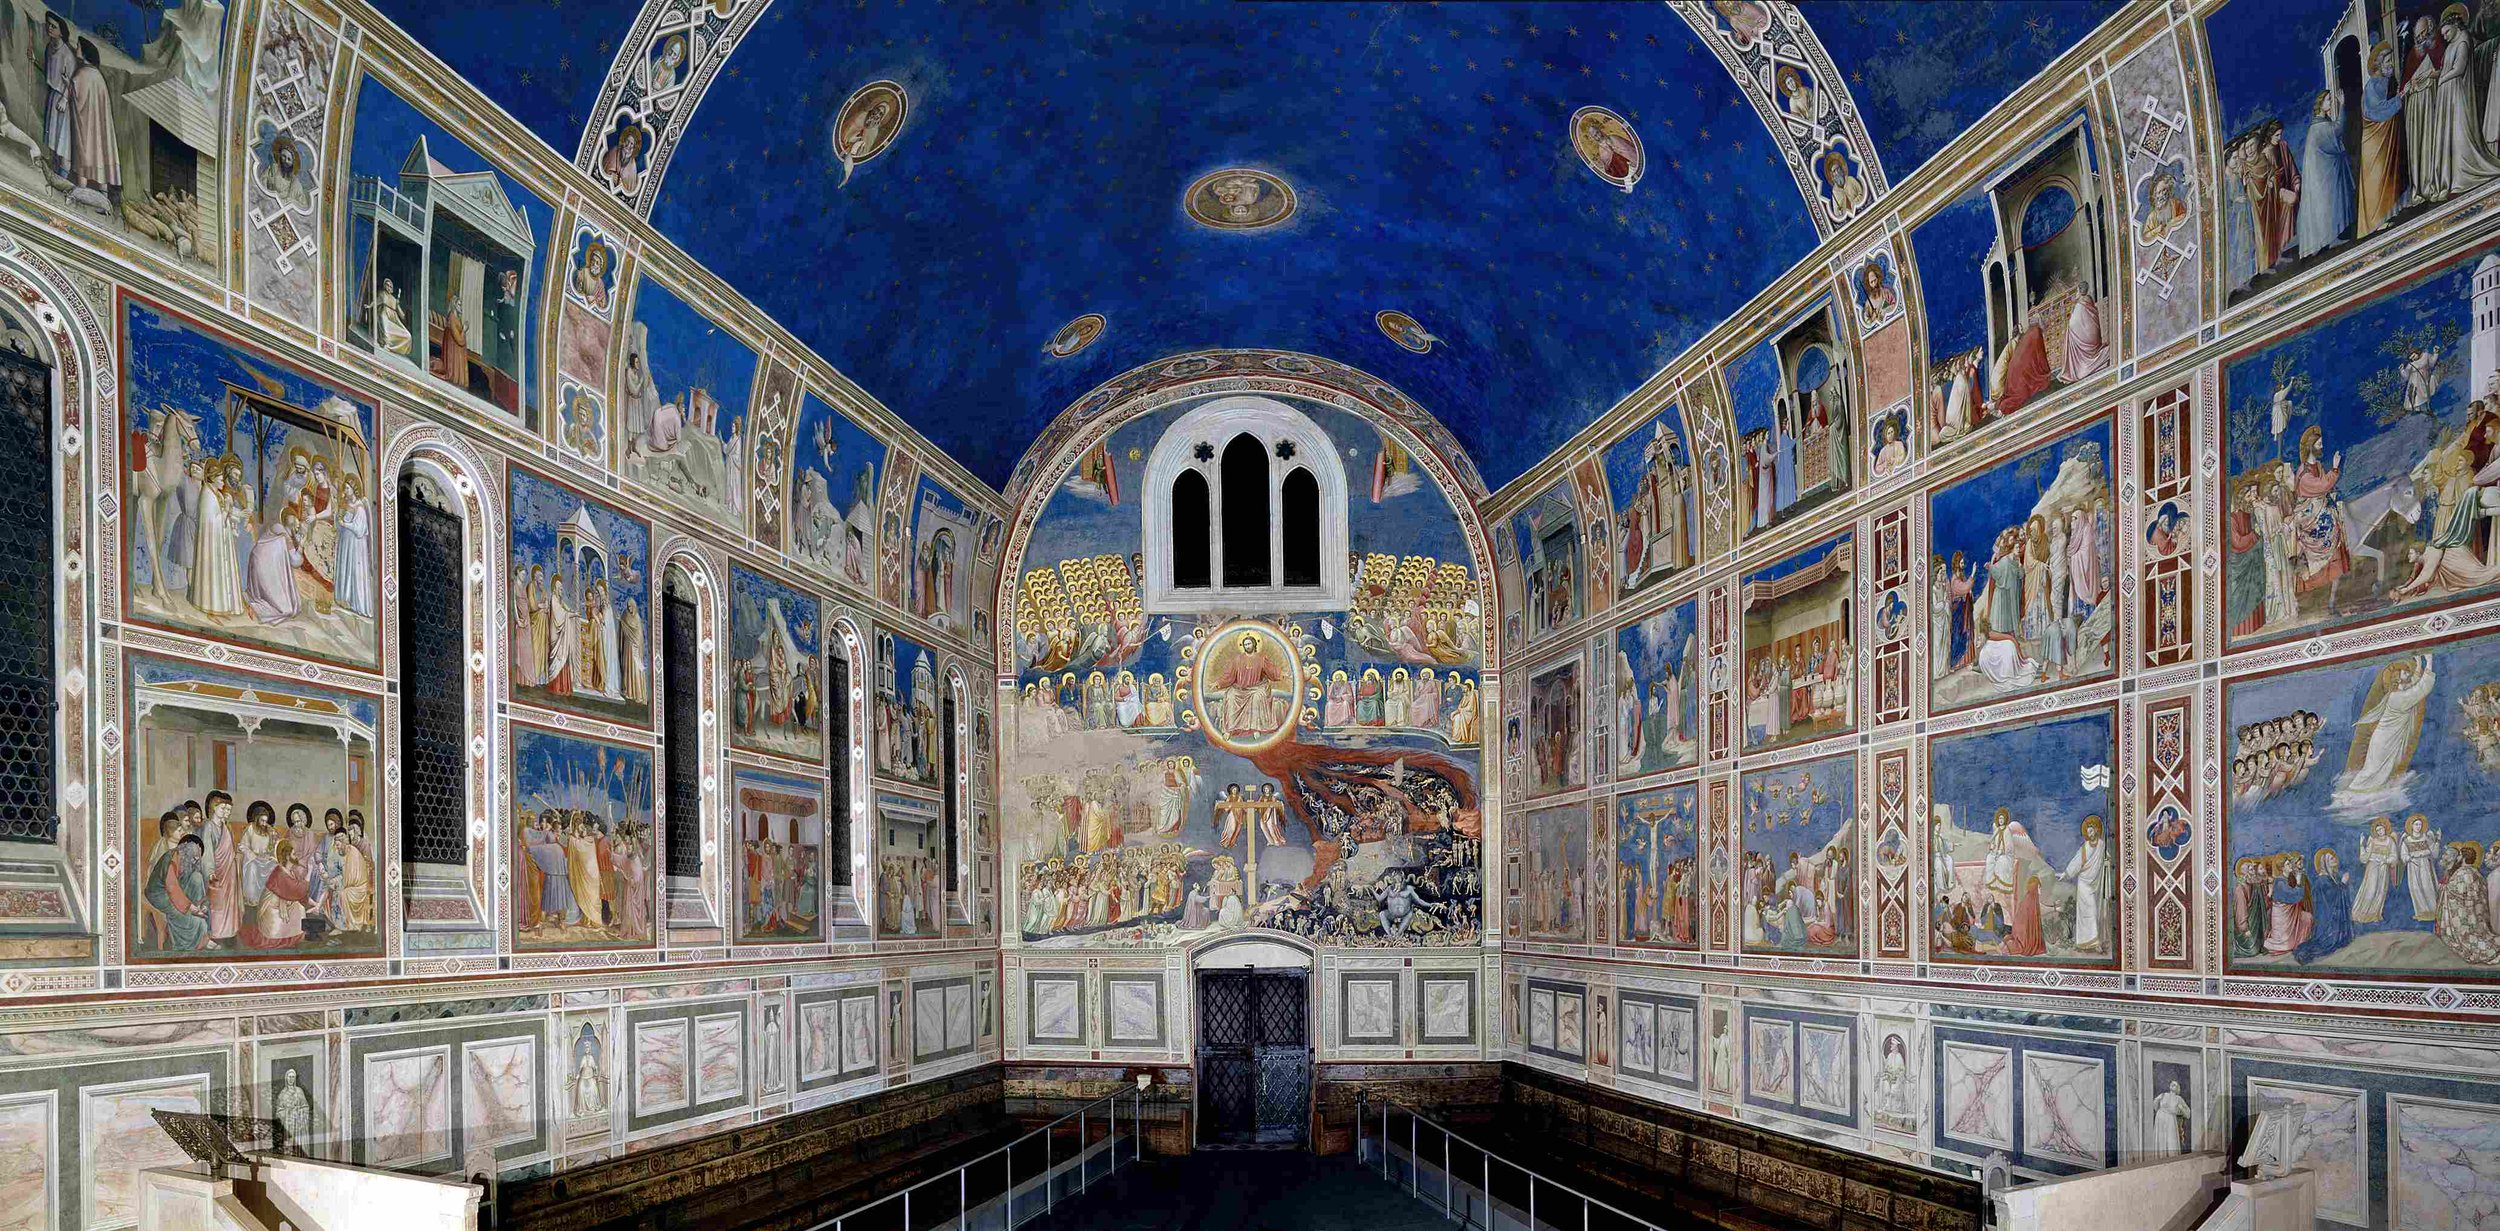 The interior of the  Scrovegni Chapel , painted by Giotto in the 14th century, inspired Galileo. Paolo also briefly plots to sneak into the chapel, certain the interior is filled with riches.